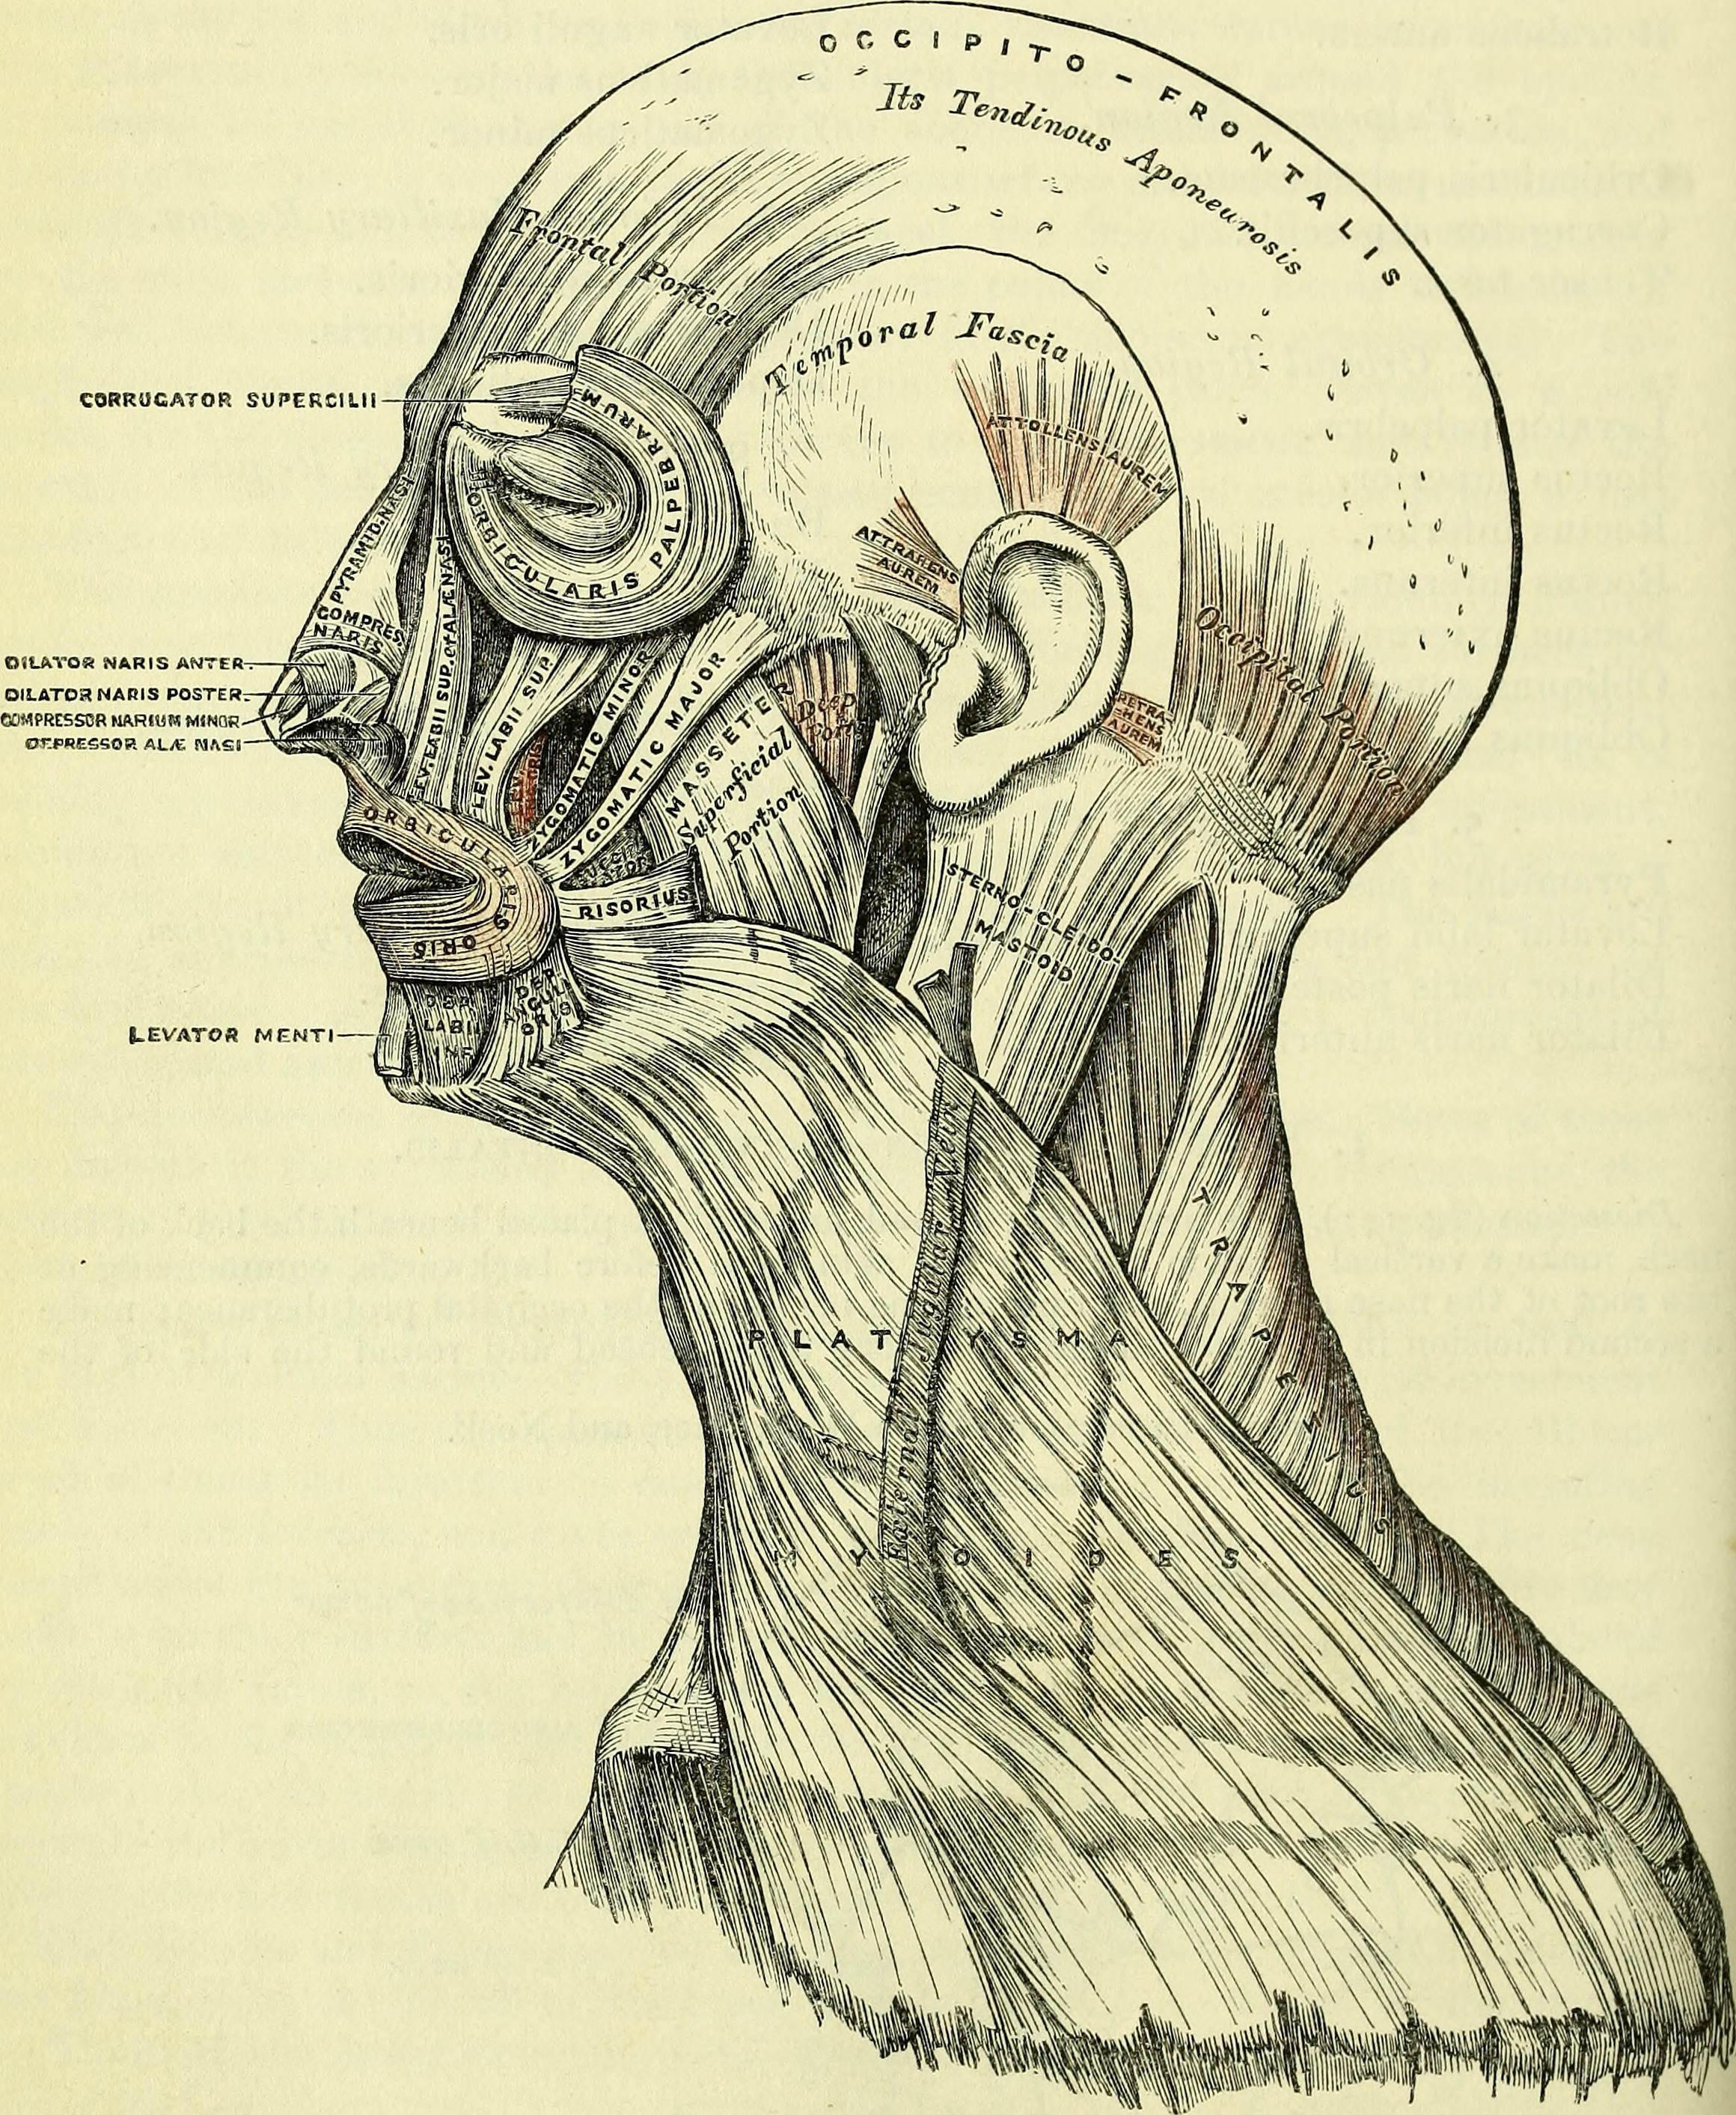 Fileanatomy Descriptive And Surgical Electronic Resource 1860